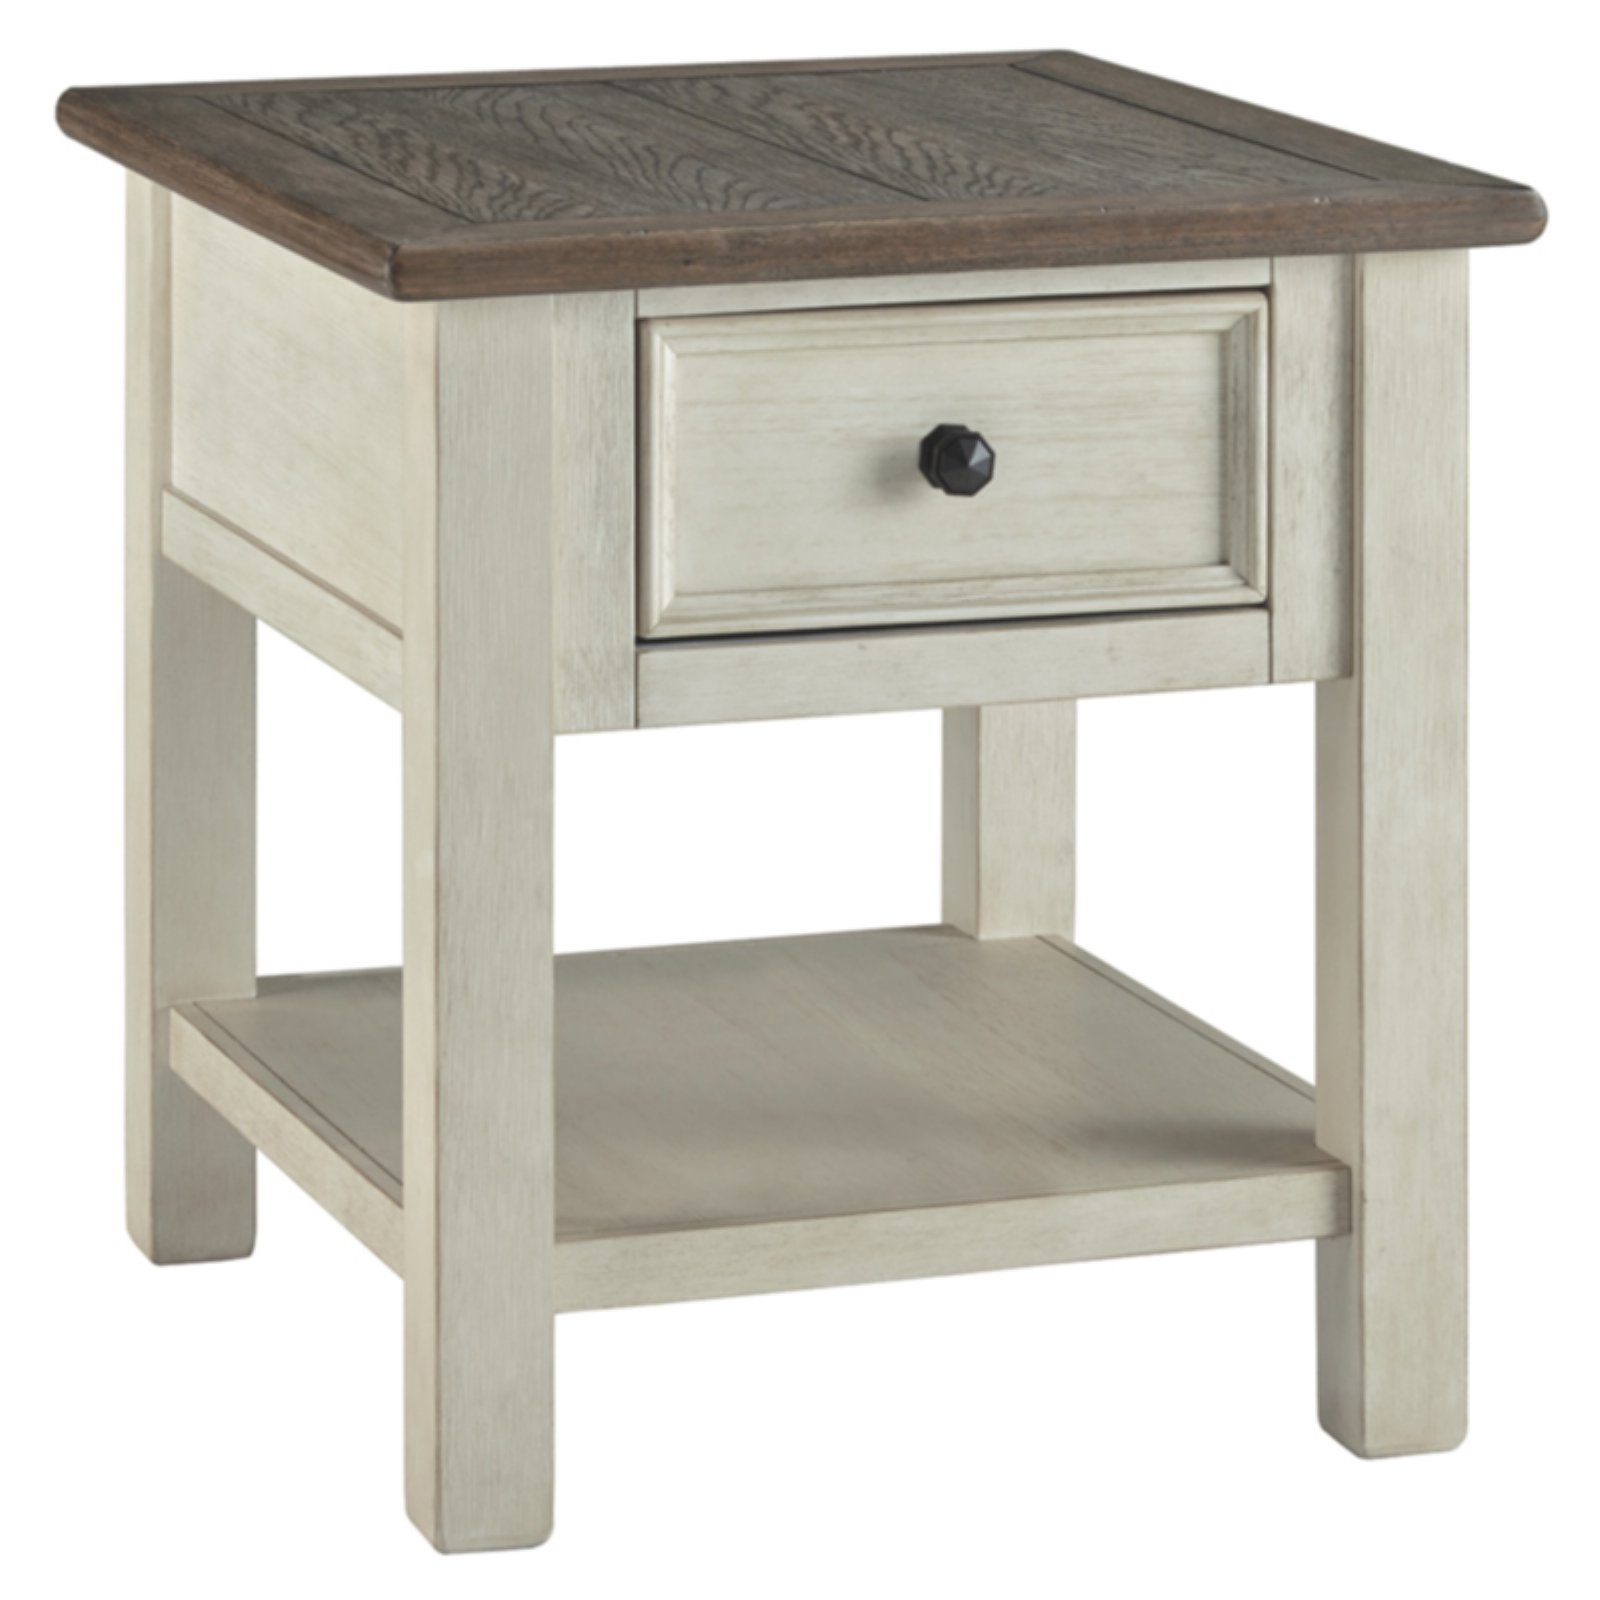 Signature Design by Ashley Bolanburg Rectangular End Table with Drawer